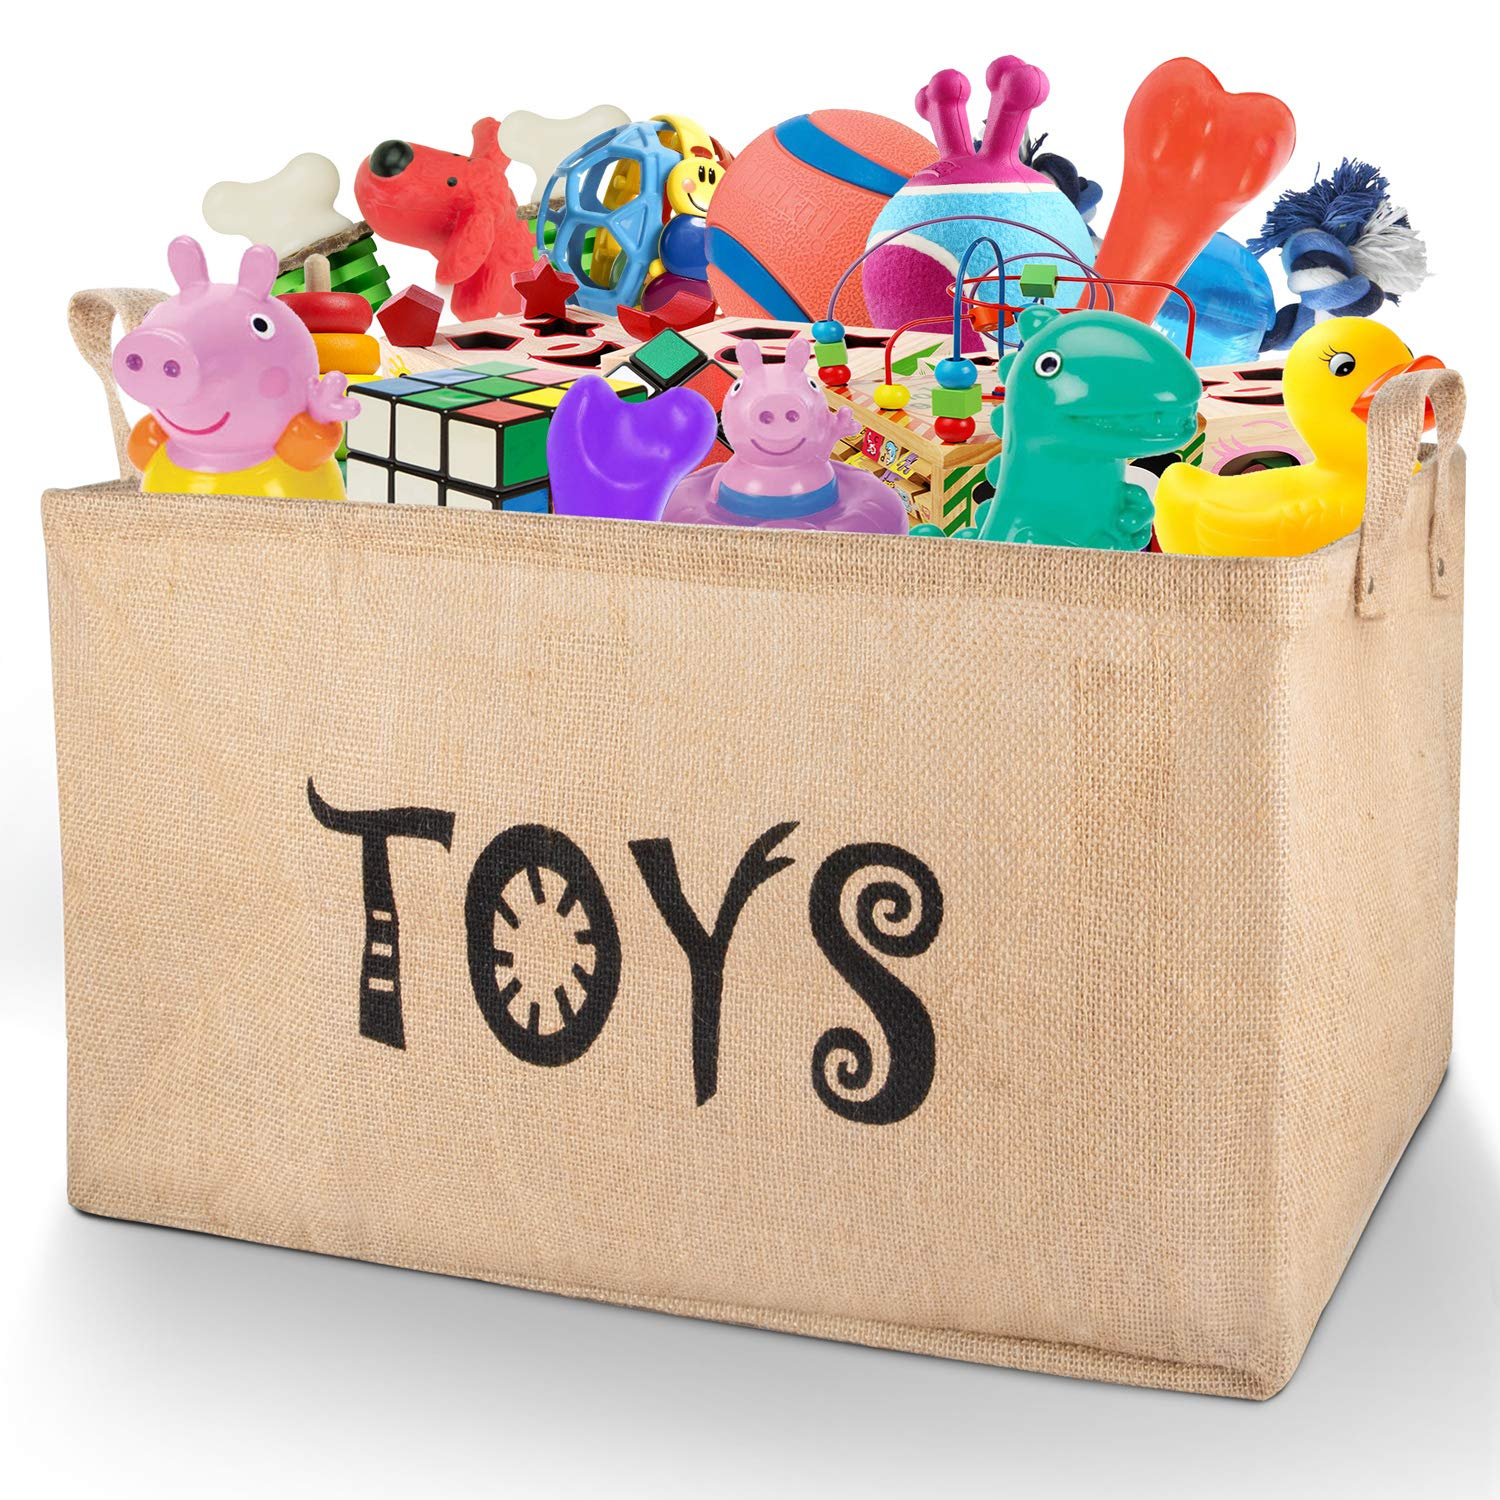 Top 10 Best Toy Boxes